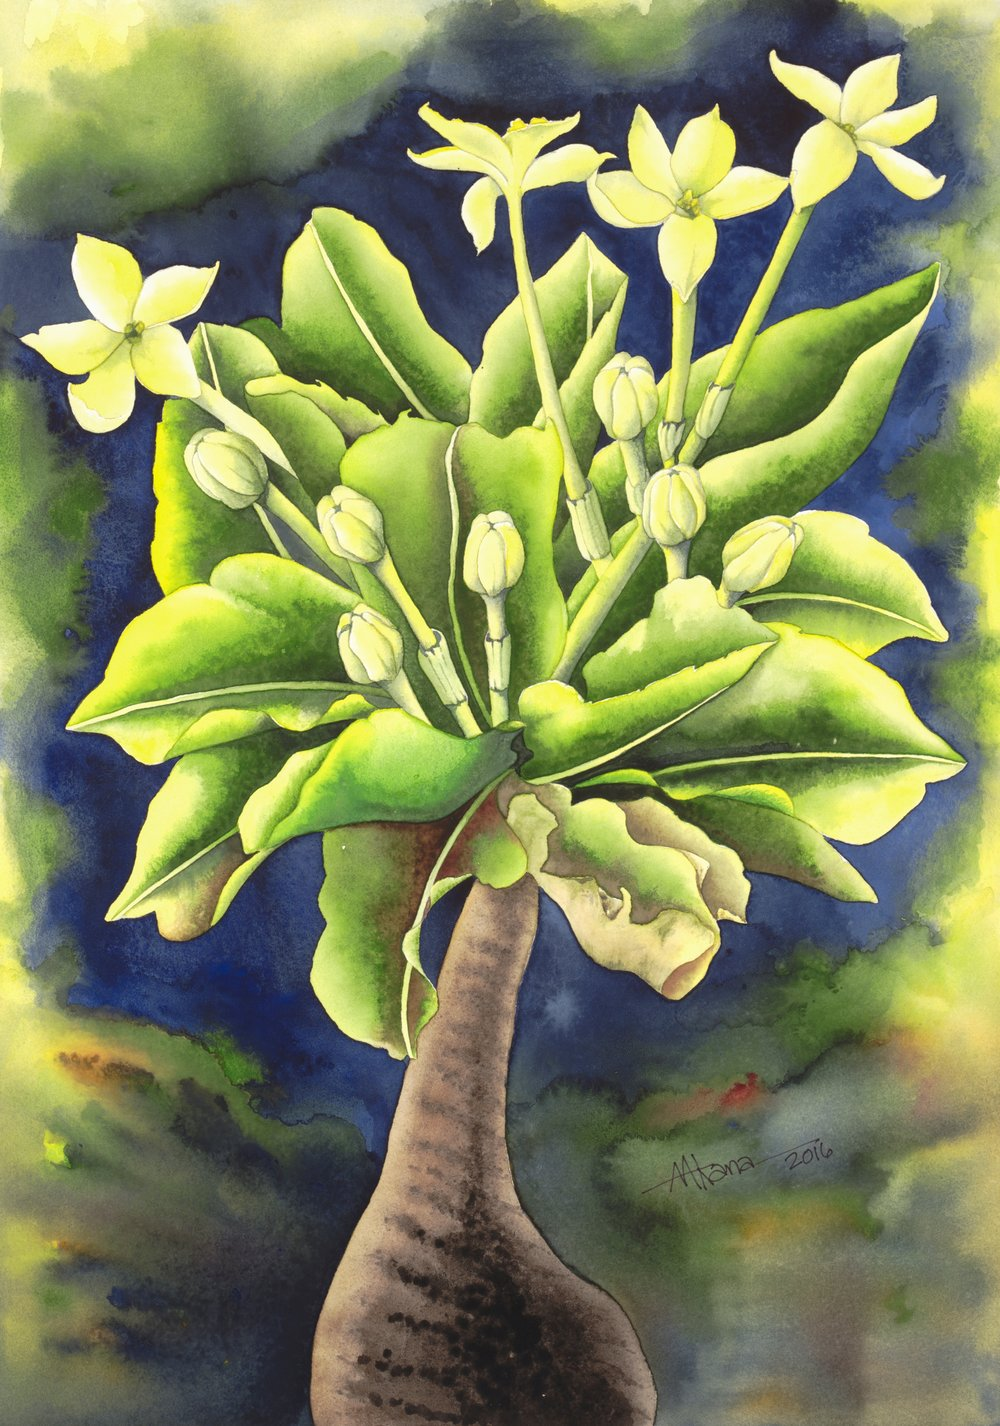 Alula   Brighamia insignis   Alula were once found on the windswept sea cliffs of Niihau and Kauai and are now believed to be extinct in the wild, except for one remaining plant (as of 2016), clinging to the high cliffs of the Na Pali Coast on Kauai.  It can grow up to 16 feet tall, with leaves and flowers growing only at the top of the plant, forming a large rounded rosette which can grow to 3 feet in diameter.